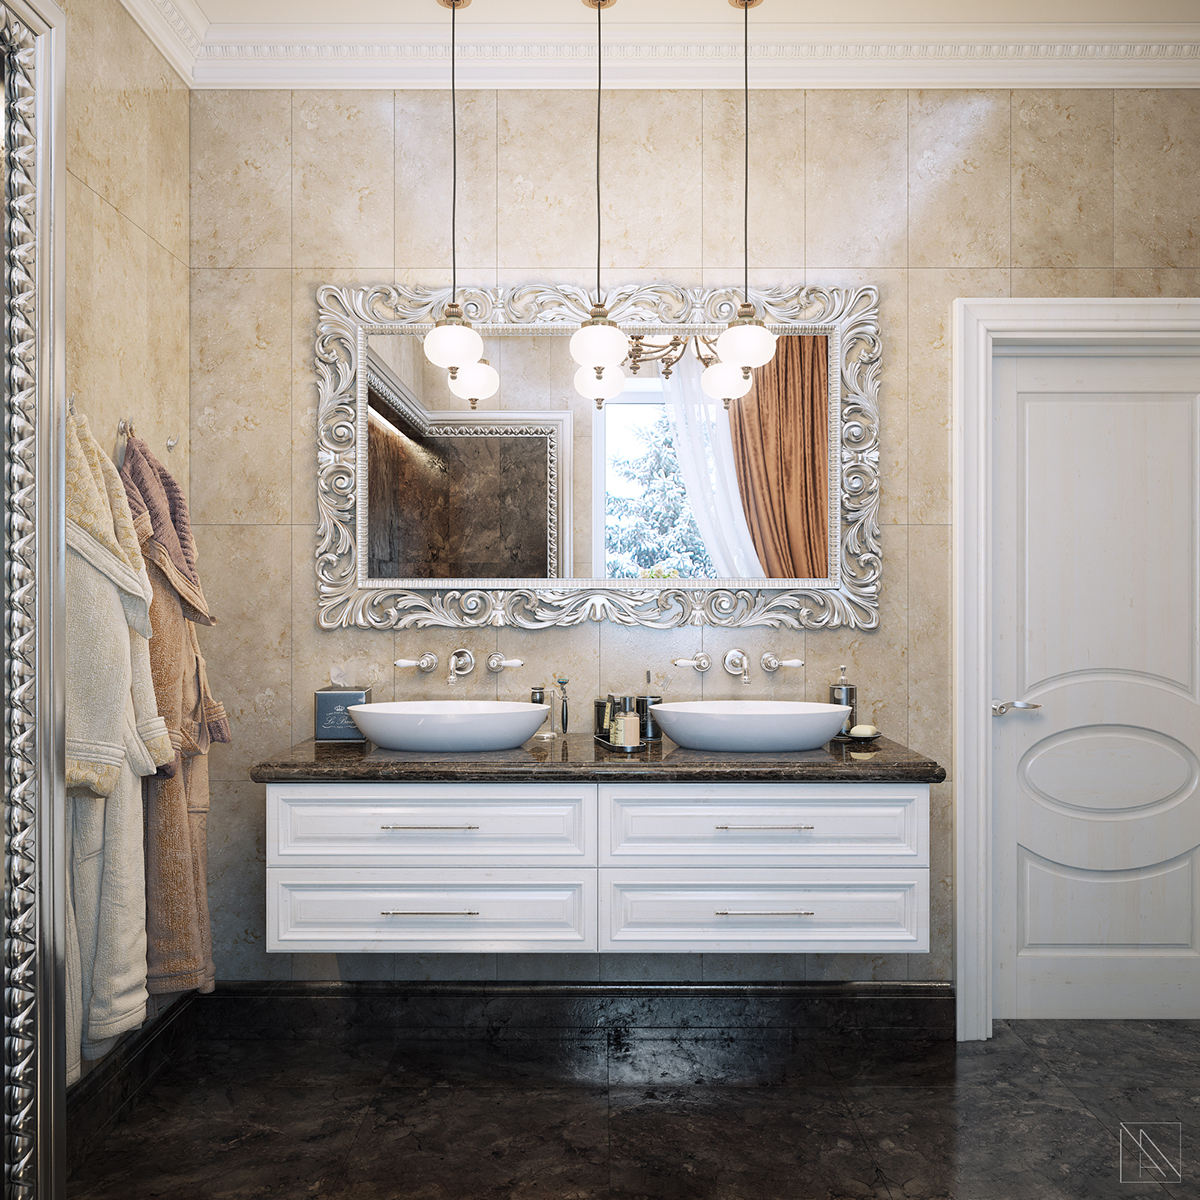 Bathroom in neoclassic style on Behance